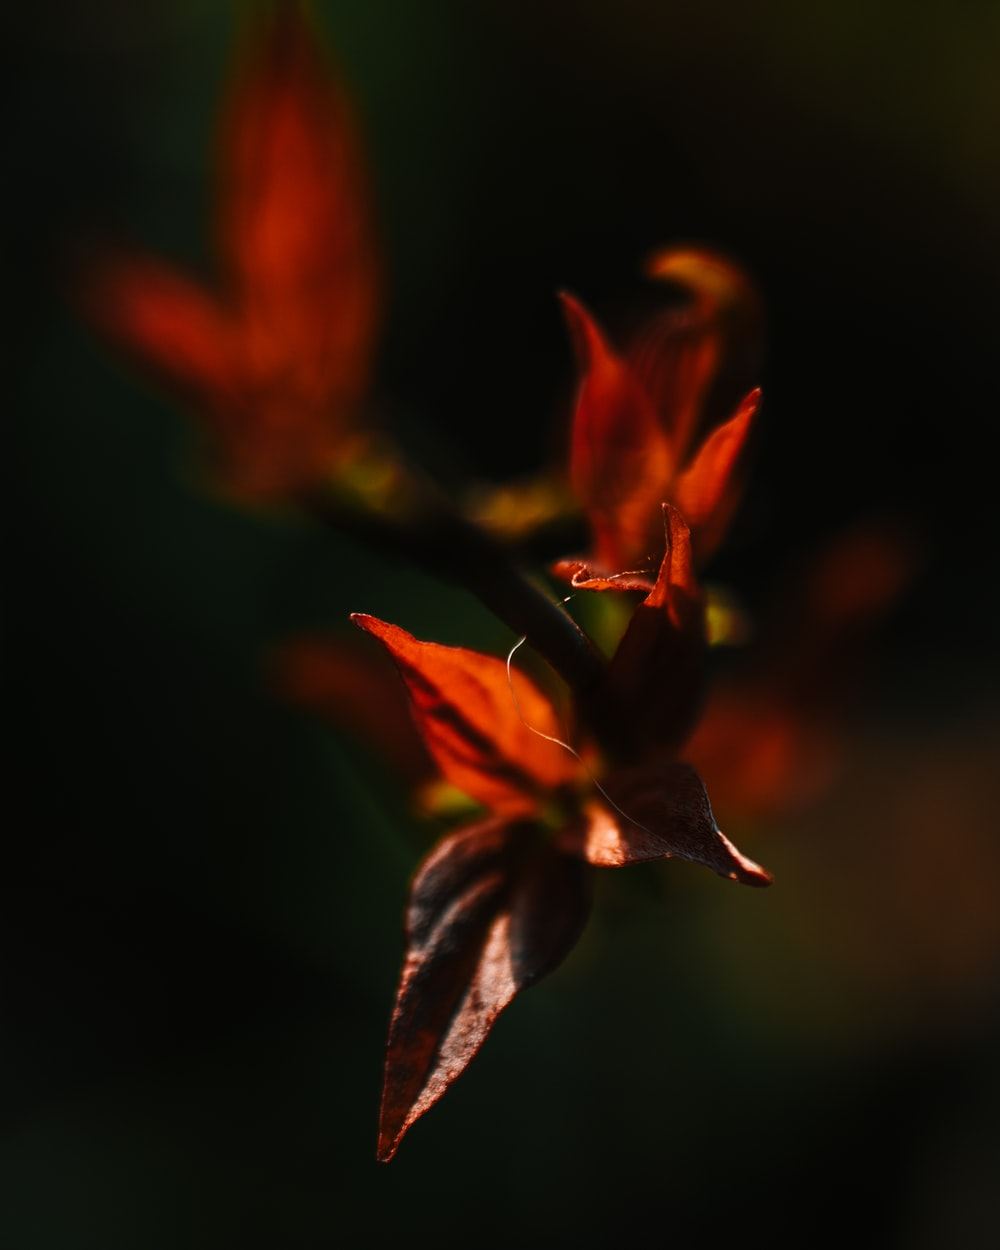 red leaf plant close-up photography